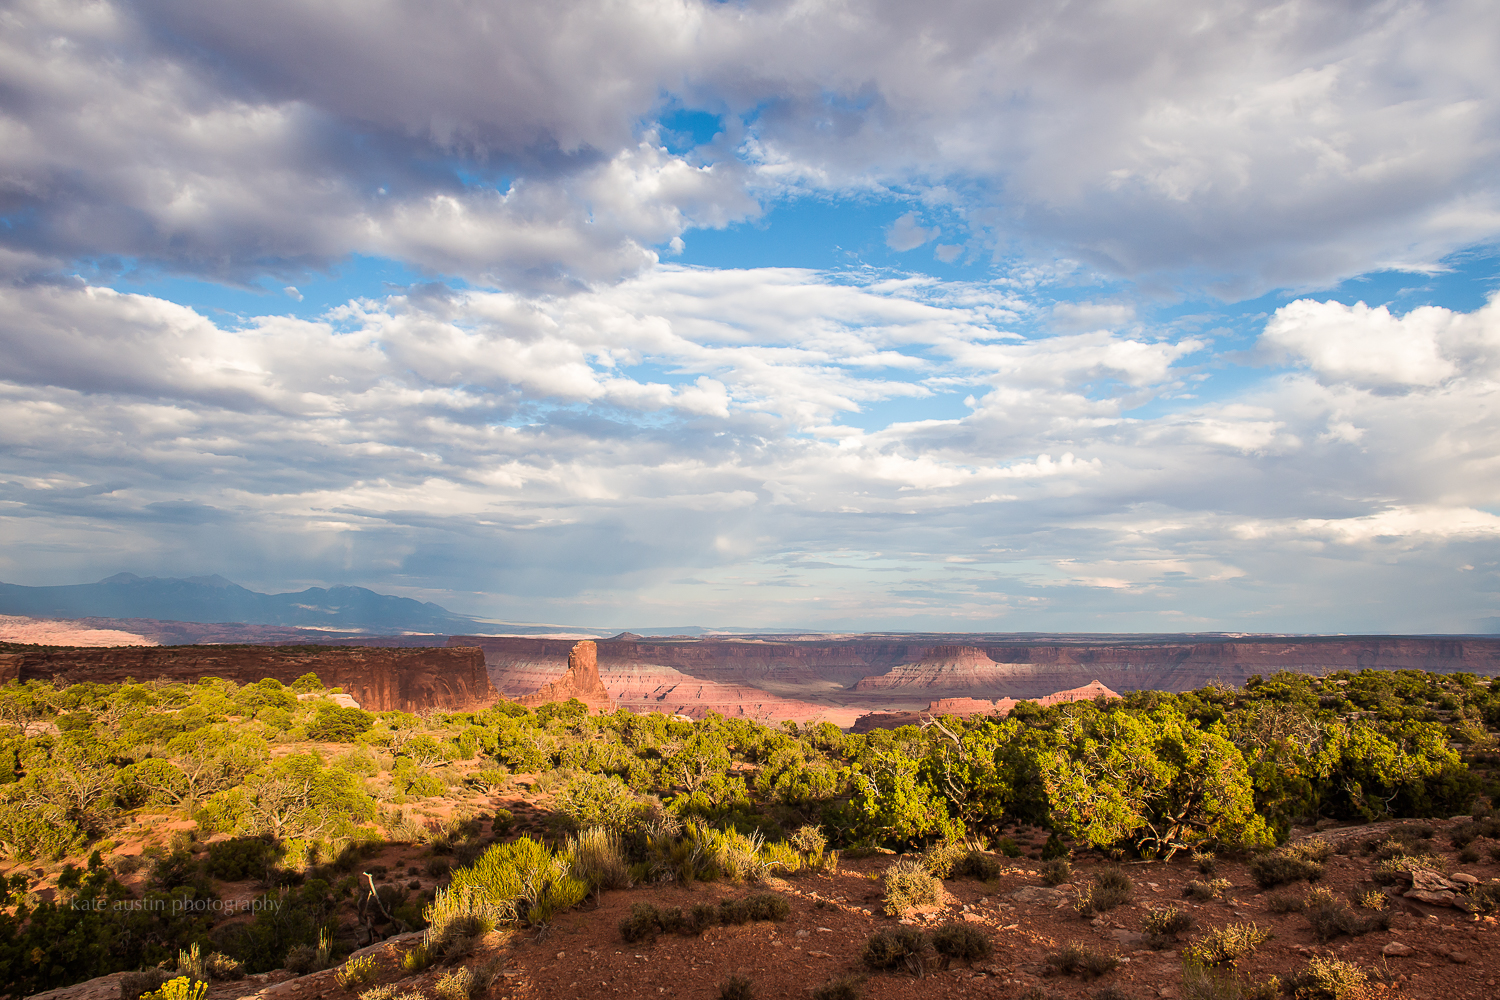 day37_murphytrail-canyonlands_moab201620160802-15.jpg